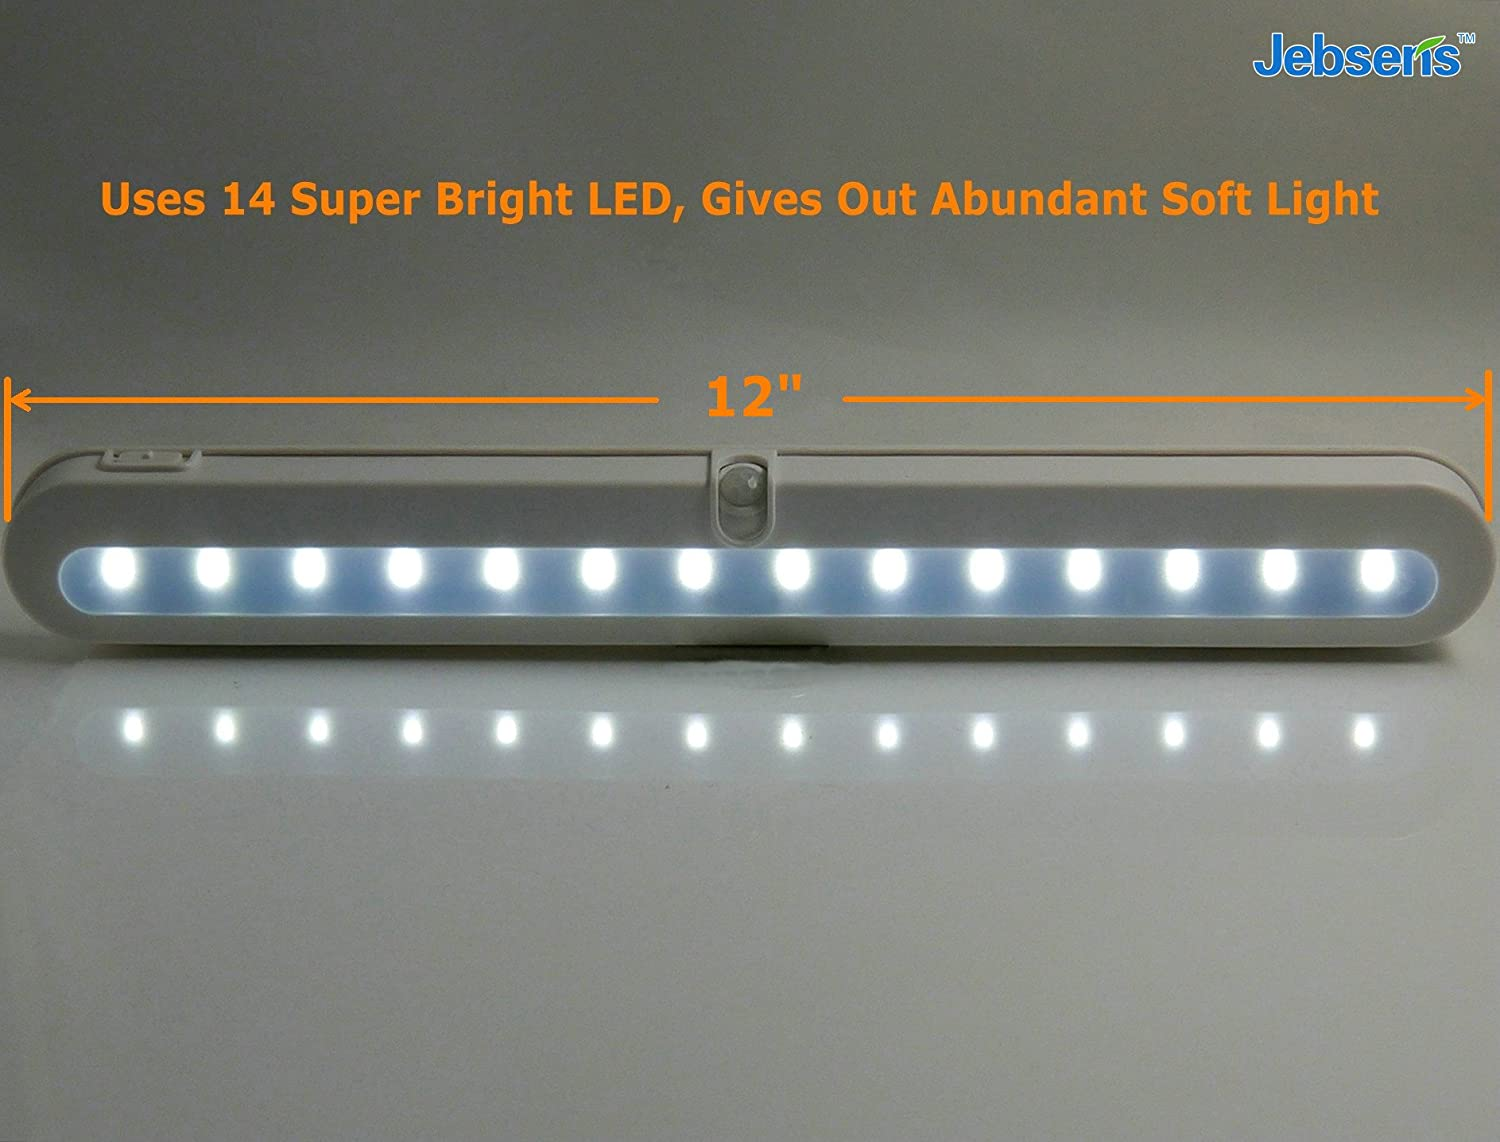 Super bright led under cabinet lighting - T01b Closet Light Jebsens 14 Led Under Cabinet Lighting And Battery Operated Wireless Motion Sensor Light With Auto On Off Function Light Cool White And